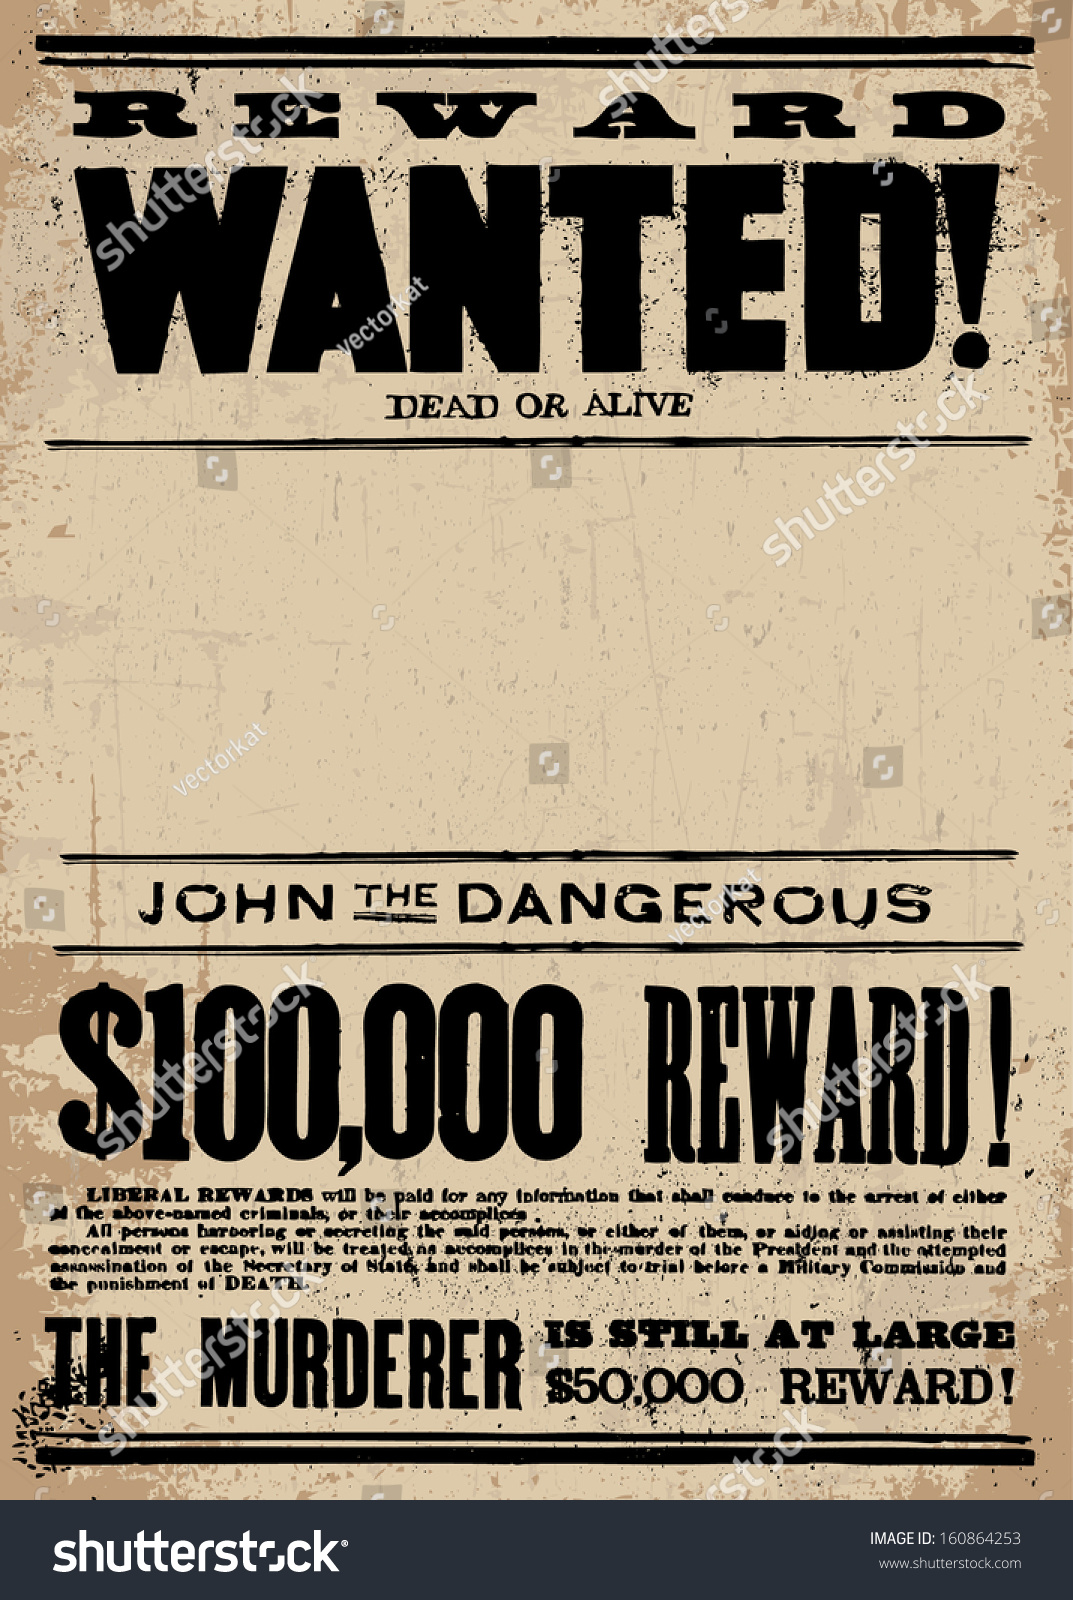 Free Wanted Poster Template 8 free wanted posters – Picture of a Wanted Poster